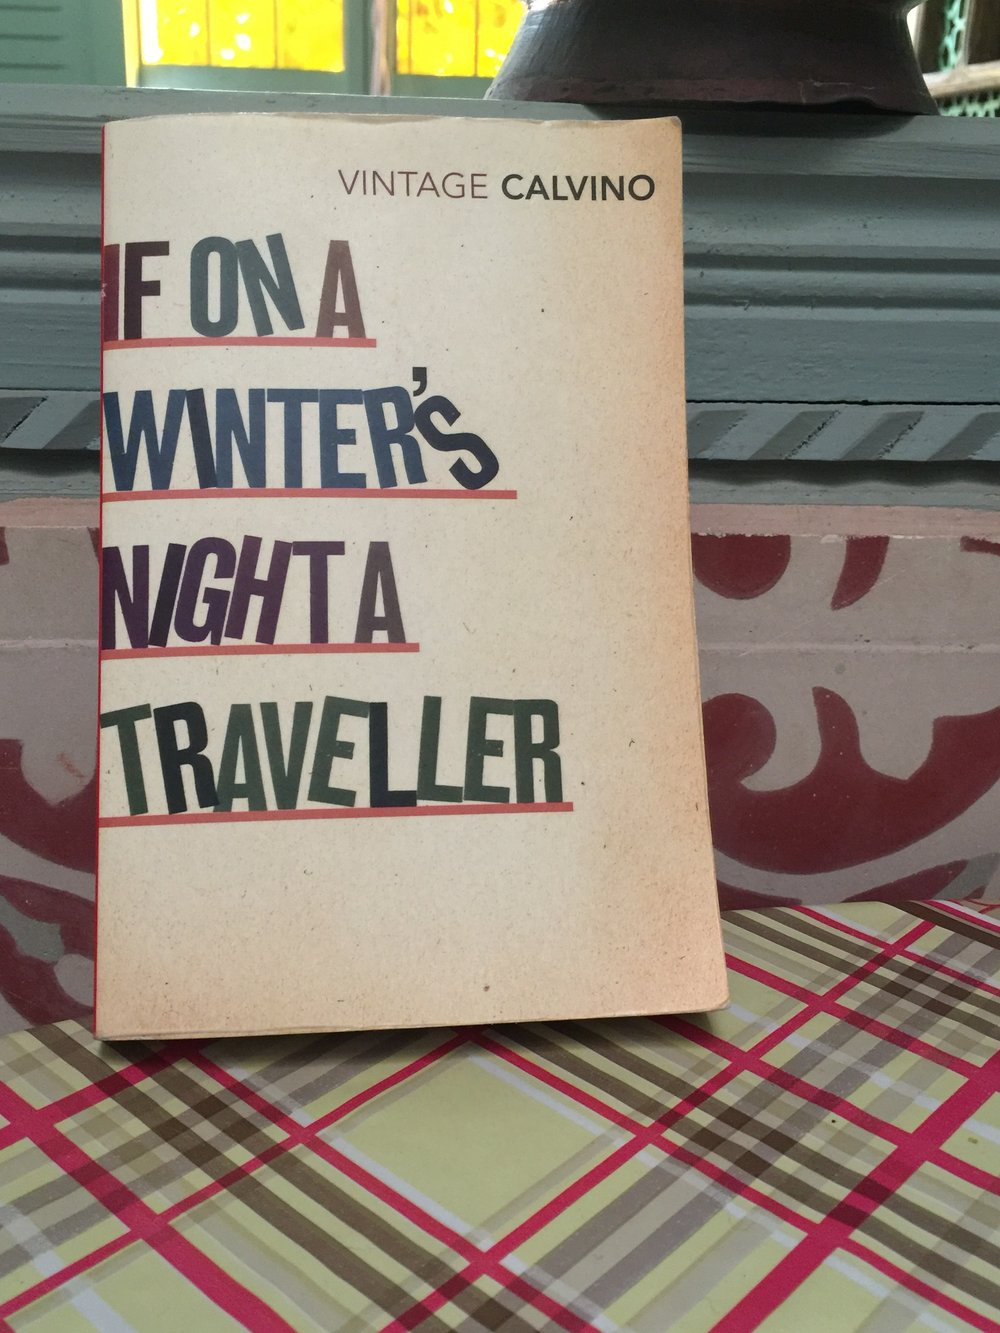 If On a Winters Night a Traveler.JPG